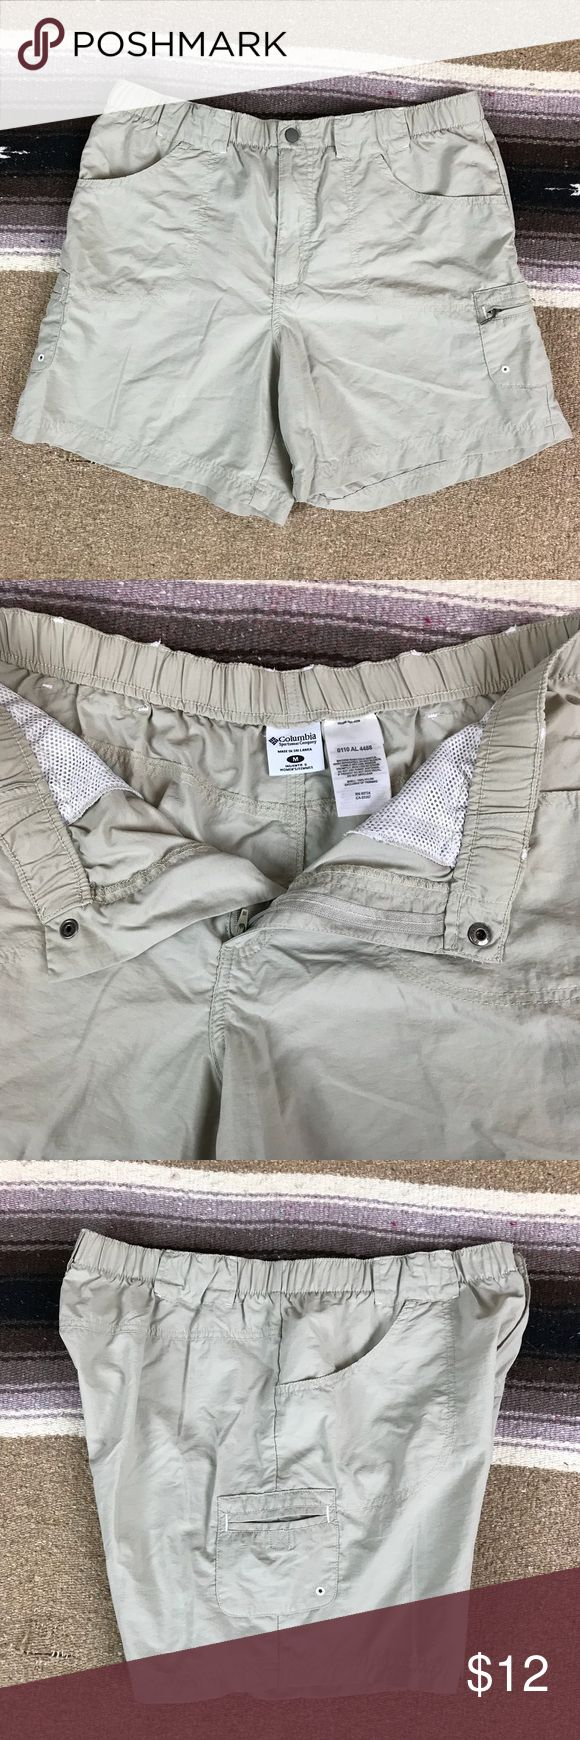 "Columbia Nylon Hiking Outdoor Shorts, Size Medium - Columbia Sportswear Company - Women's size medium - In good condition! - 100% nylon - Waist: 32"" - Rise: 11"" - Inseam: 6"" - Length: 16"" Columbia Shorts"